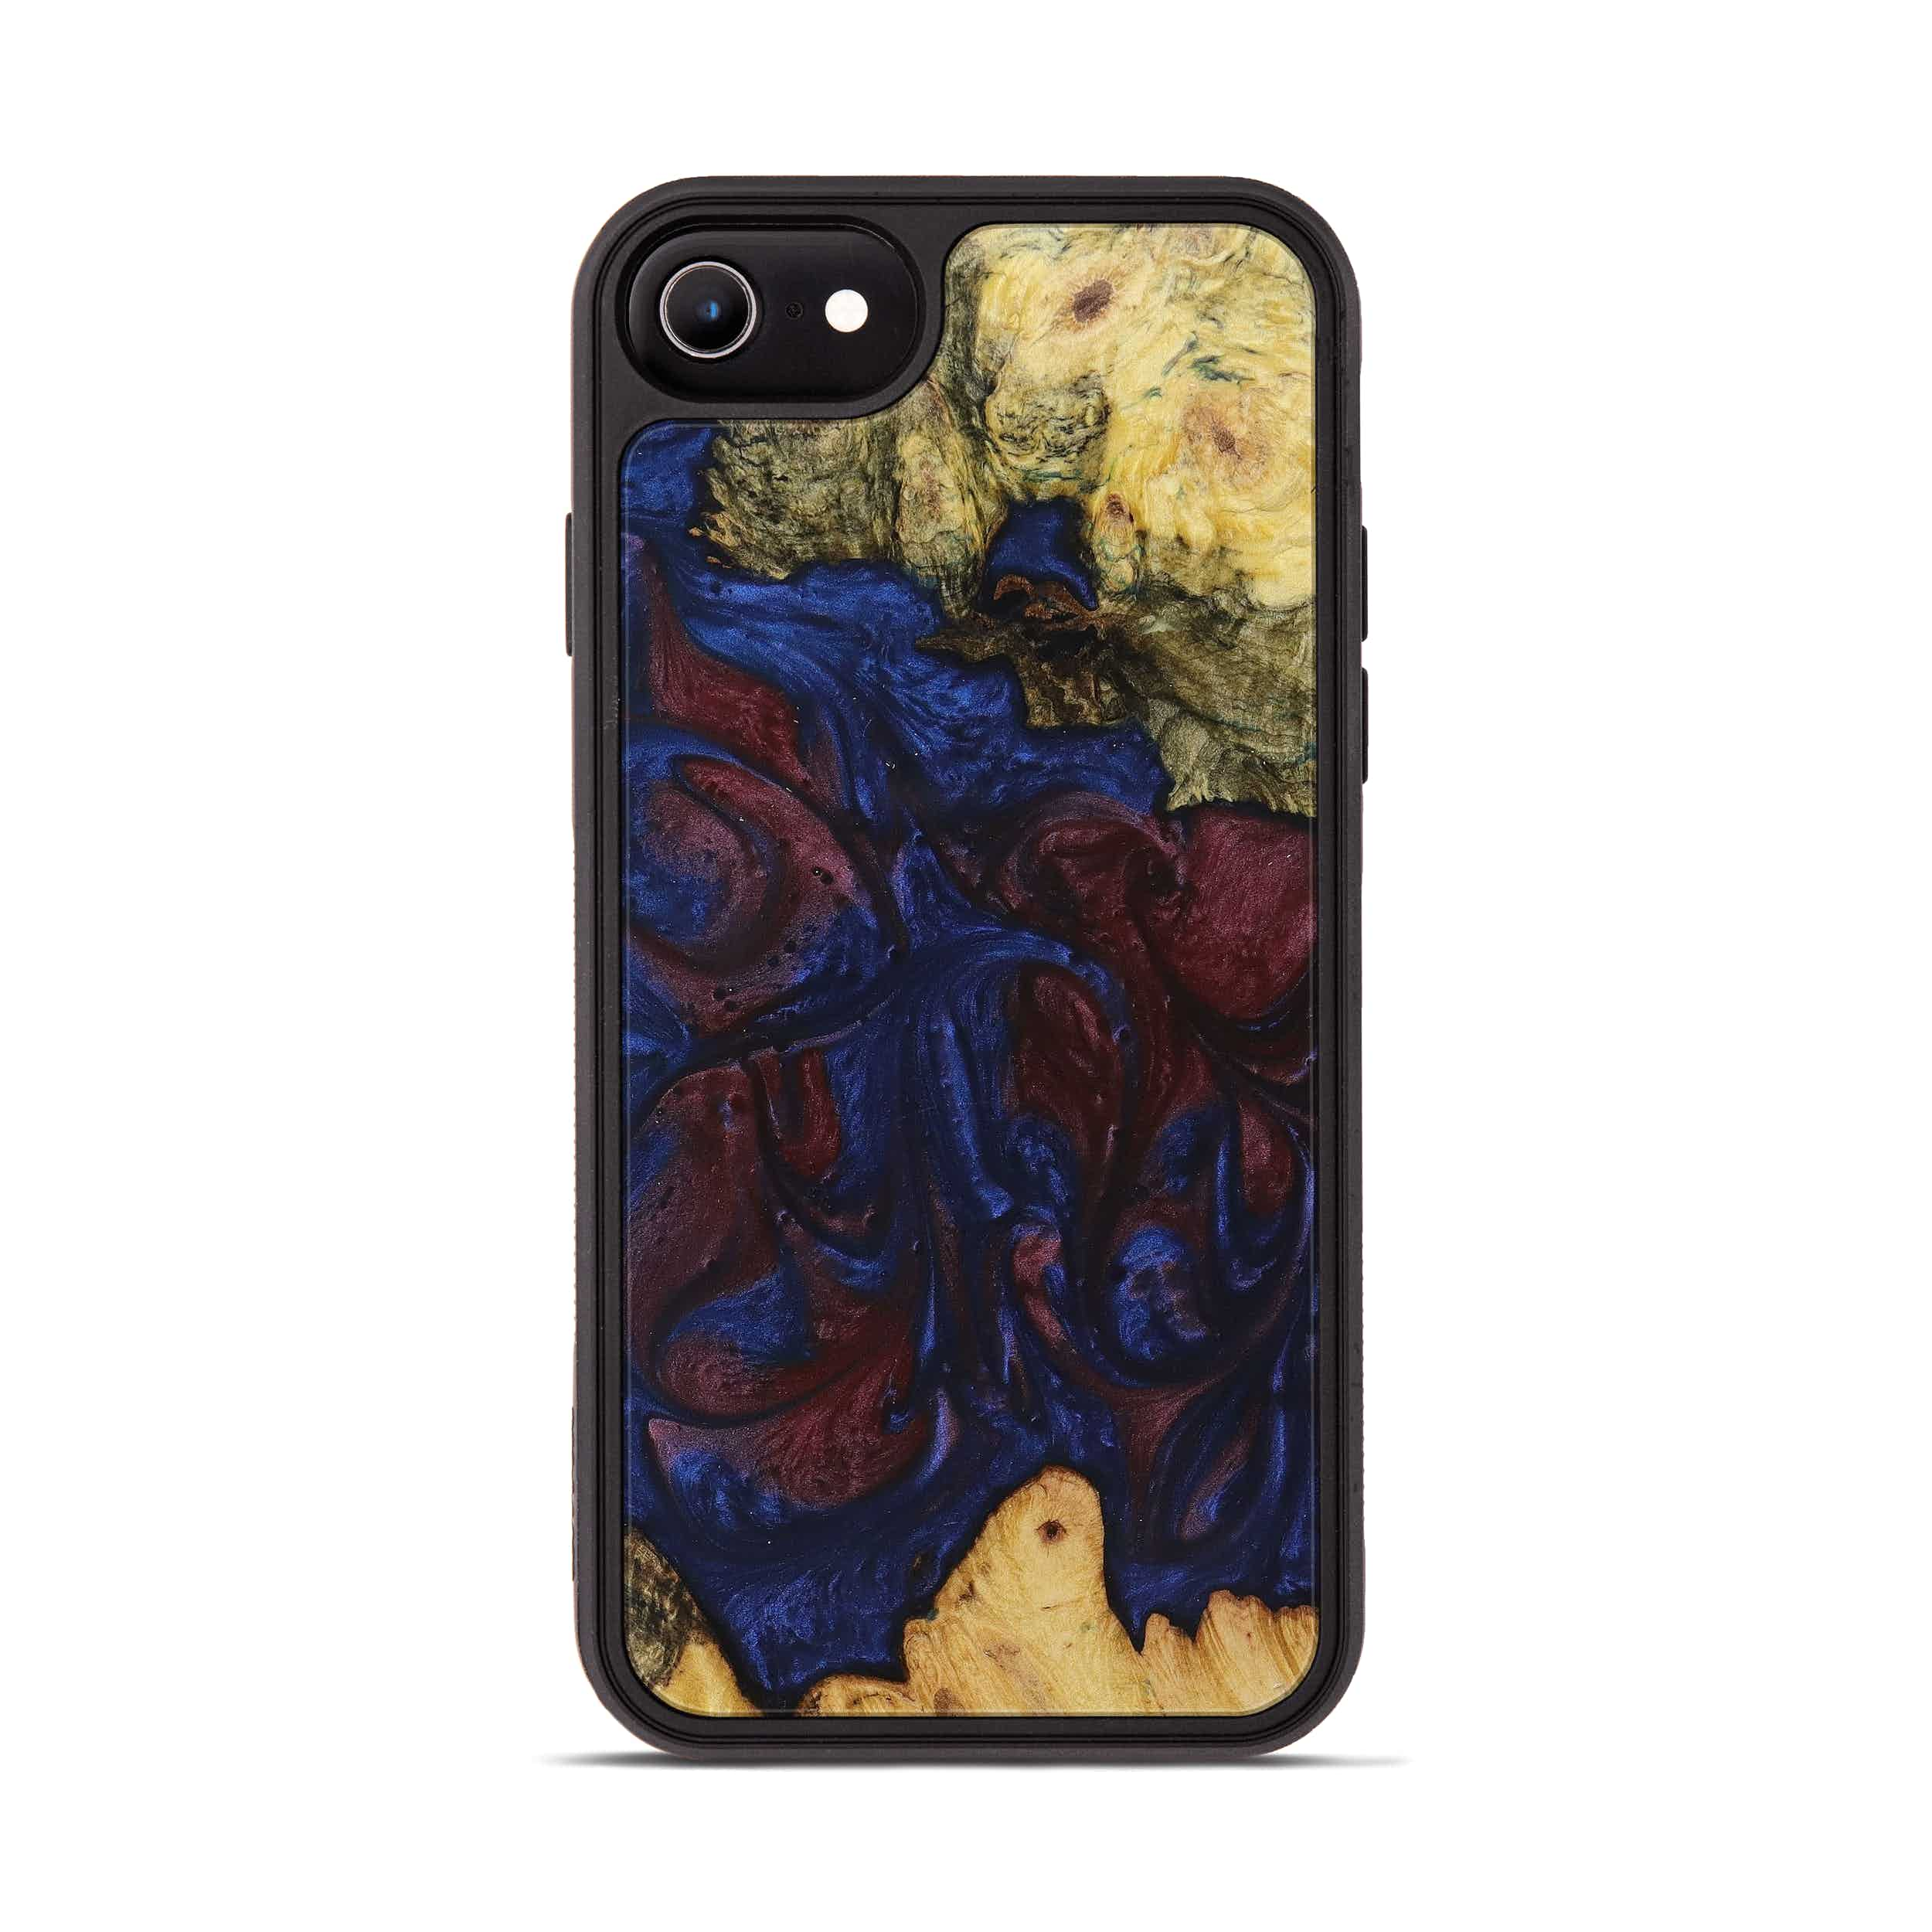 iPhone 6s Wood+Resin Phone Case - Tamqrah (Blue & Red, 394790)